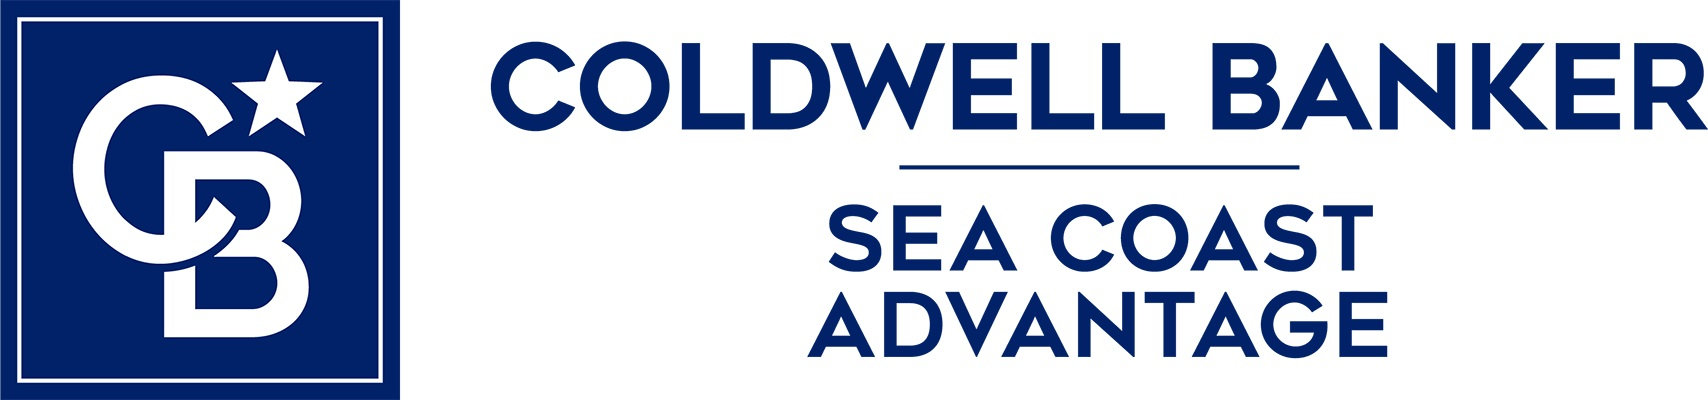 Carly Davis - Coldwell Banker Sea Coast Advantage Realty